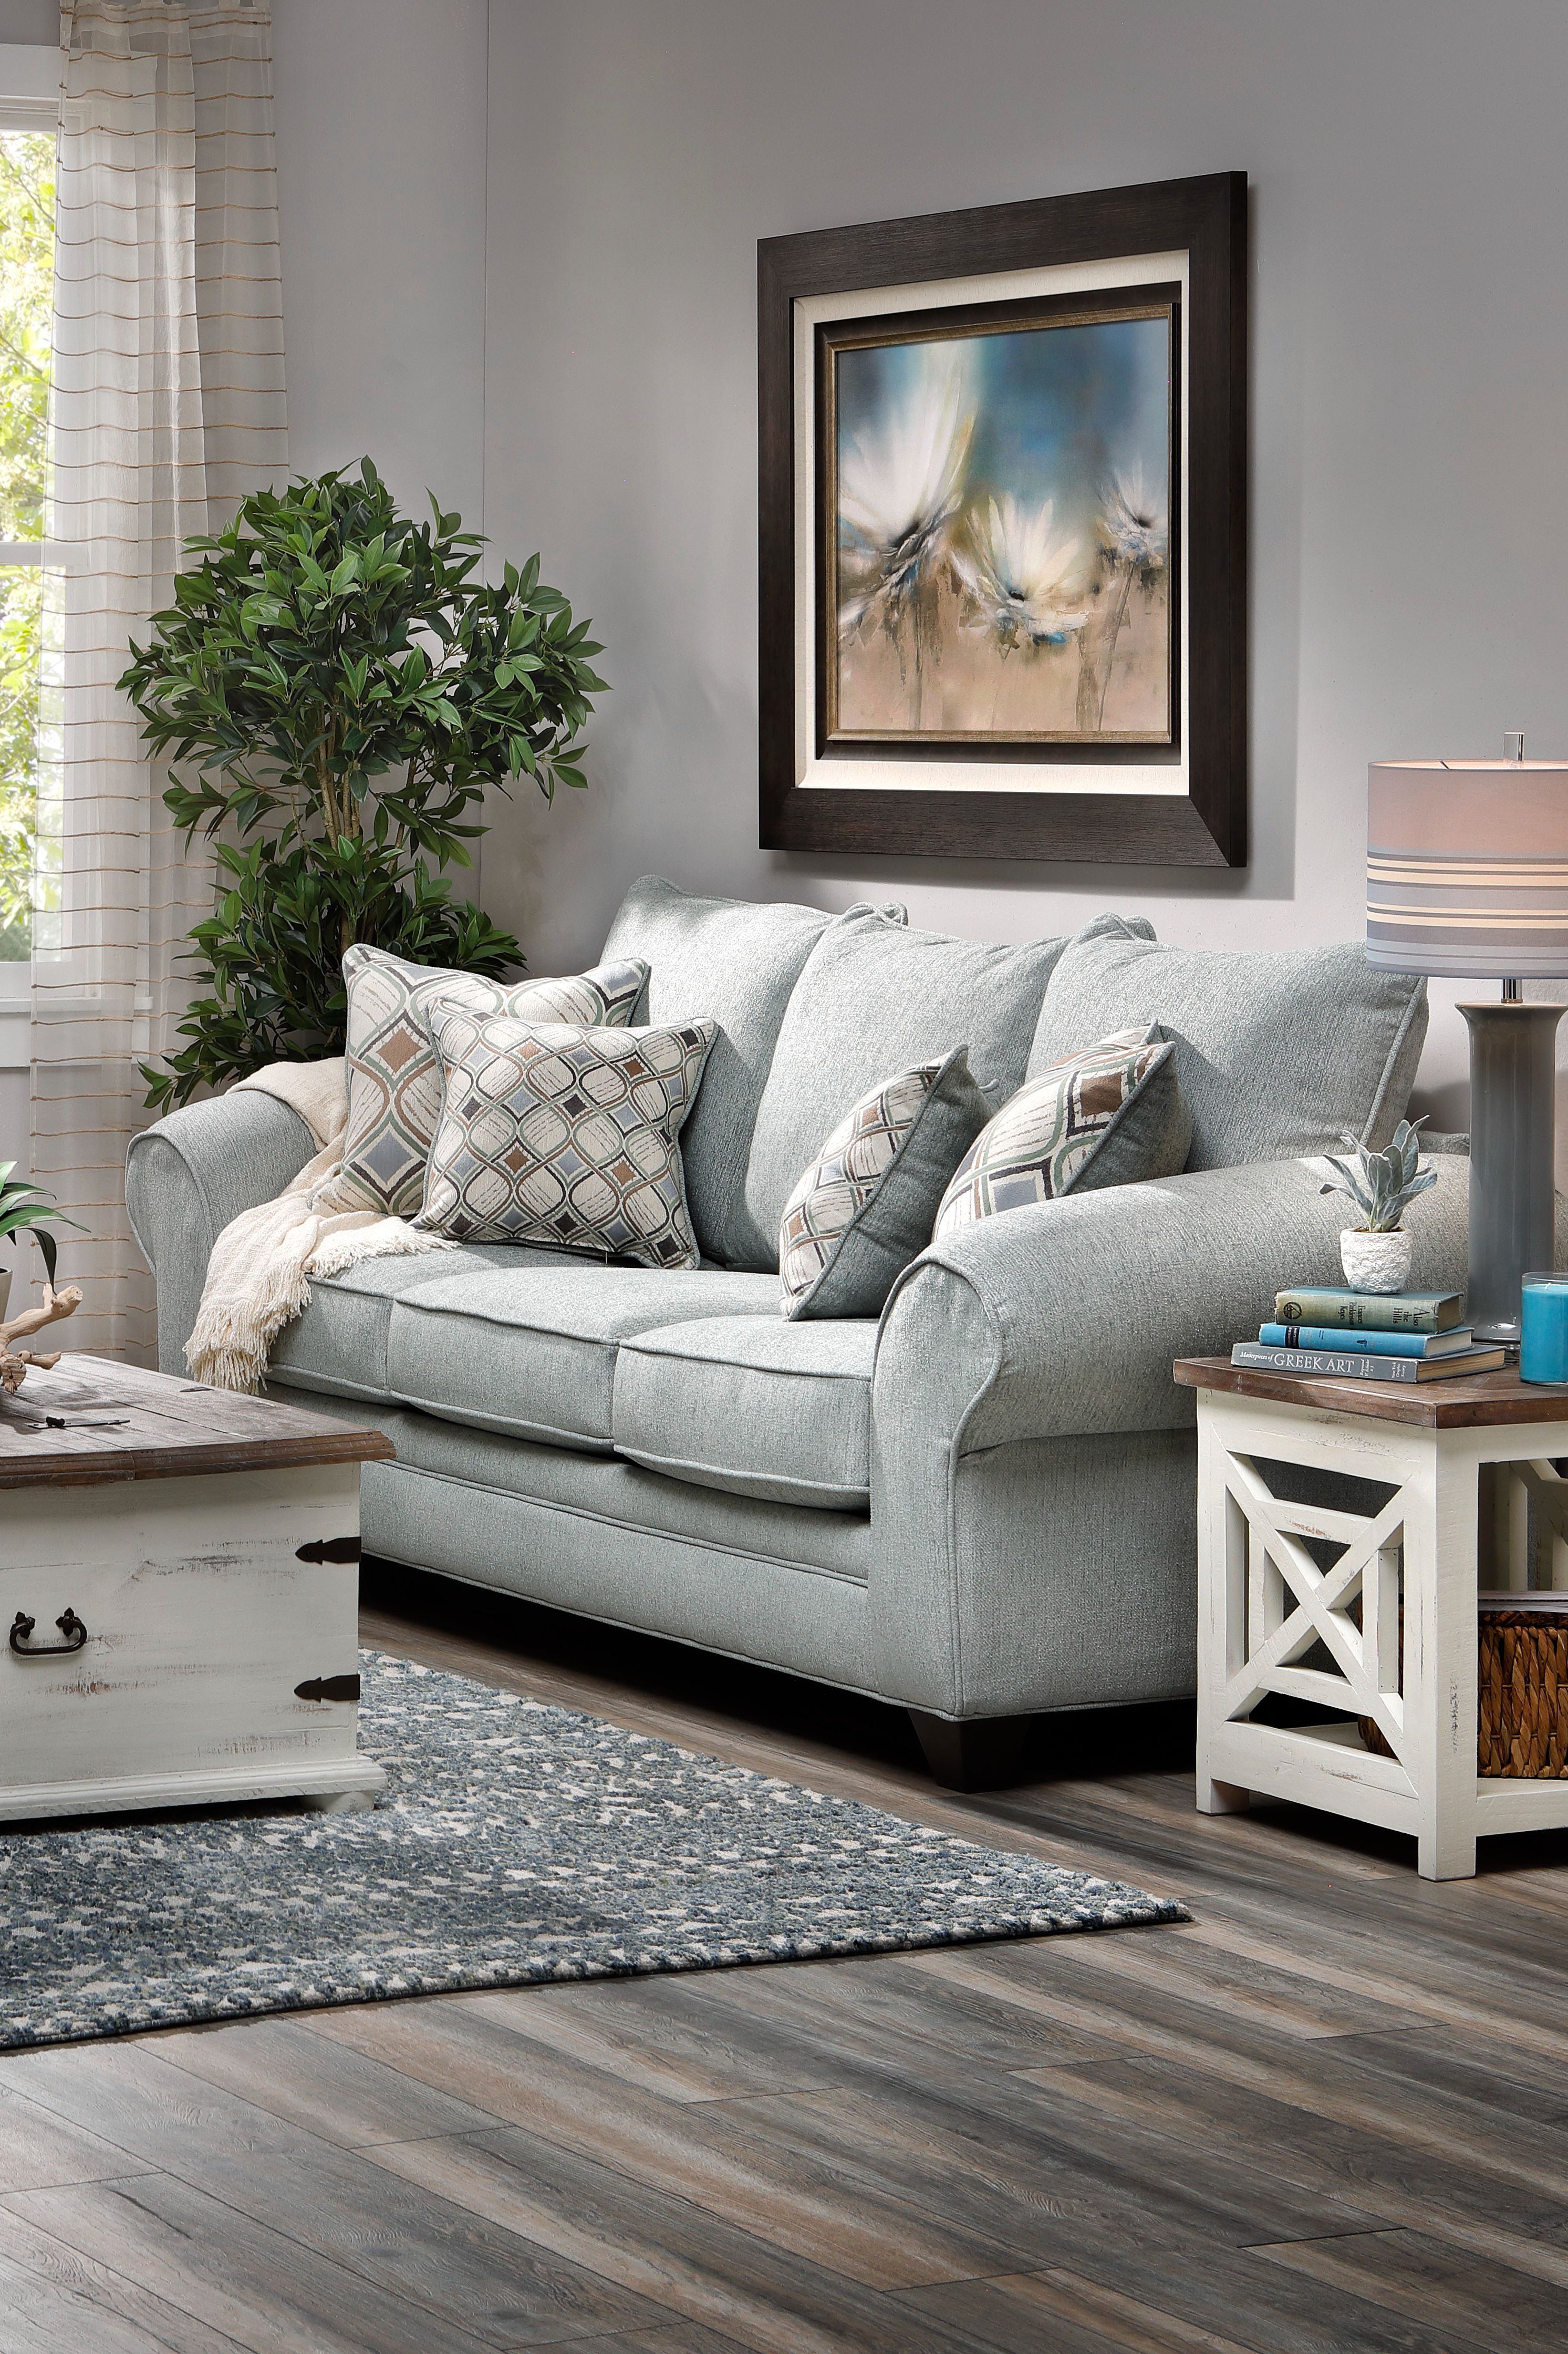 Skylar Sofa In 2021 Rowe Furniture Living Room Sets Sofa